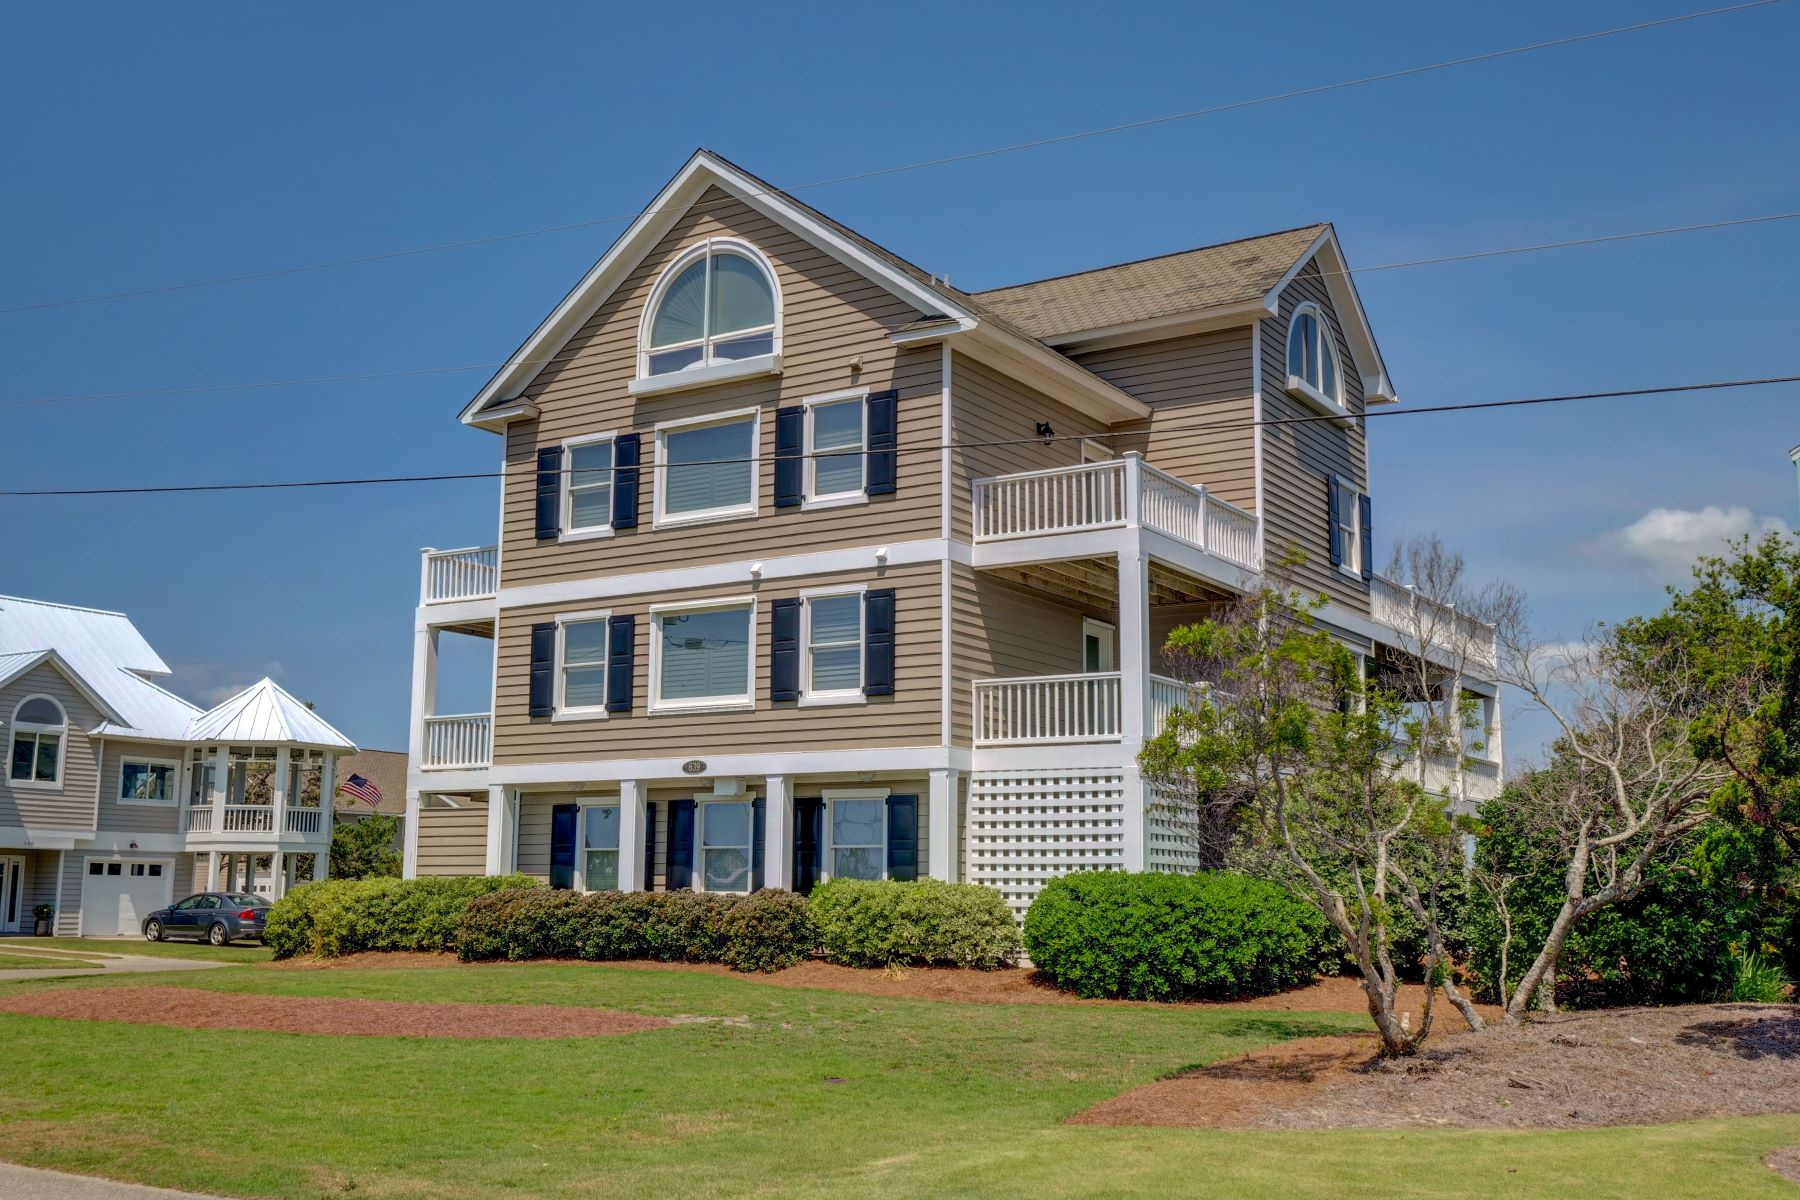 Single Family Homes for Sale at Elegant Island Home 639 Maritime Way Topsail Beach, North Carolina 28445 United States